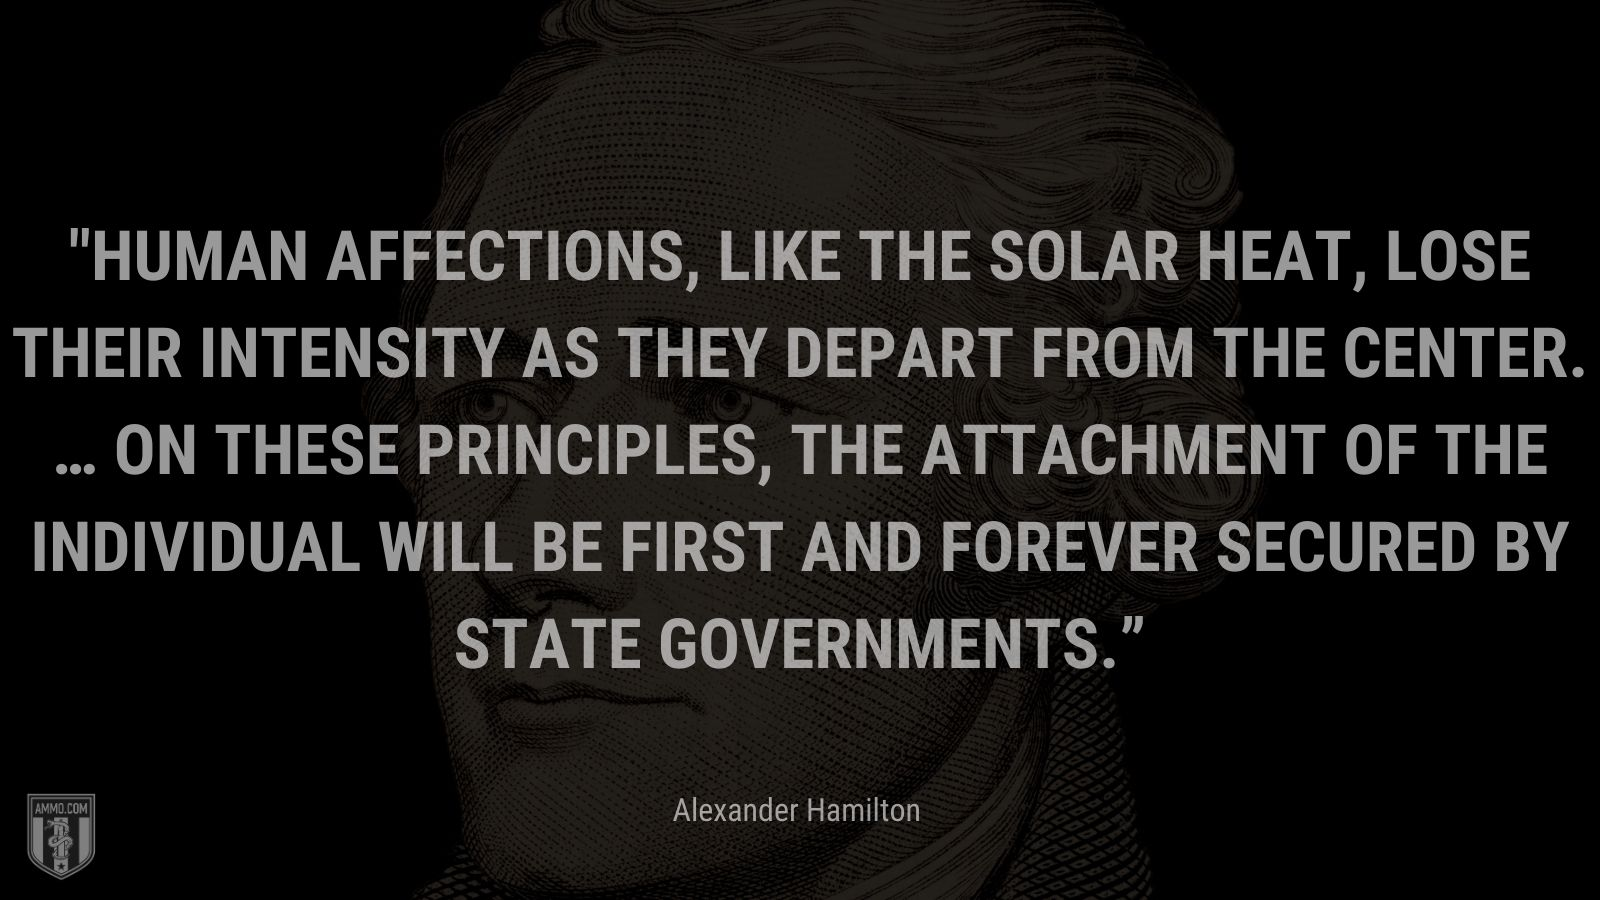 """""""Human affections, like the solar heat, lose their intensity as they depart from the center. … On these principles, the attachment of the individual will be first and forever secured by state governments."""" - Alexander Hamilton"""